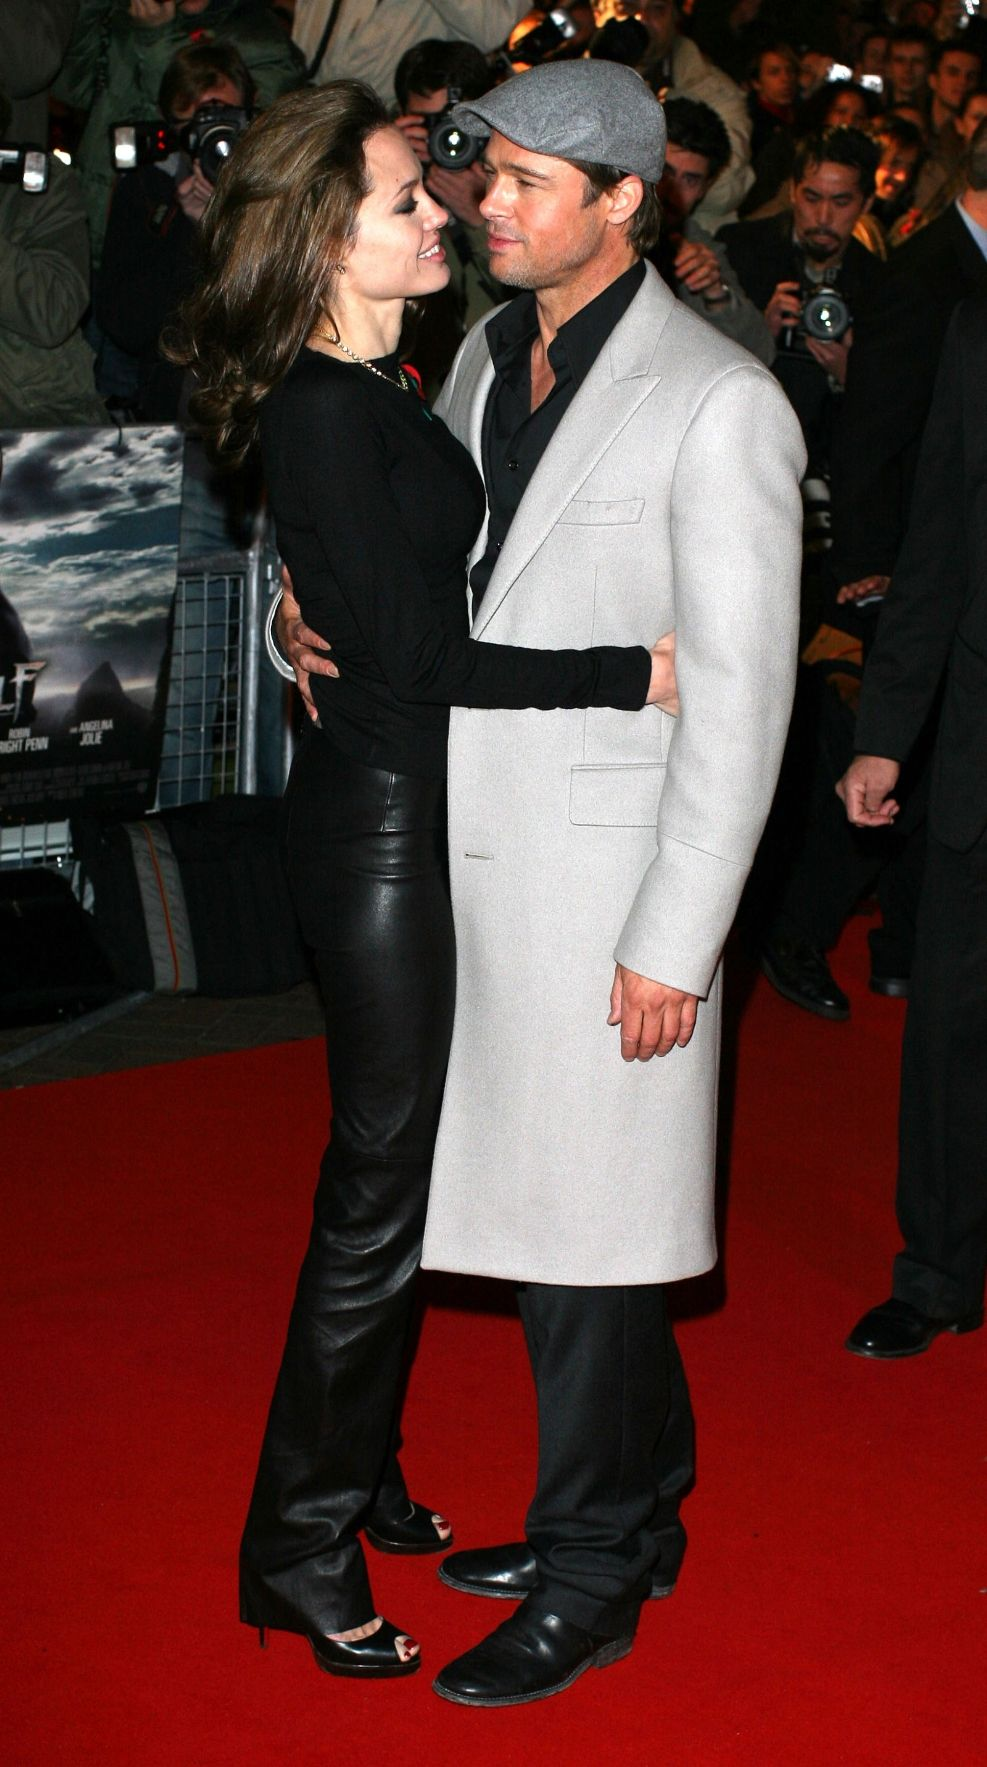 112007-beowulf-london-premiere-gettyimages-157123048